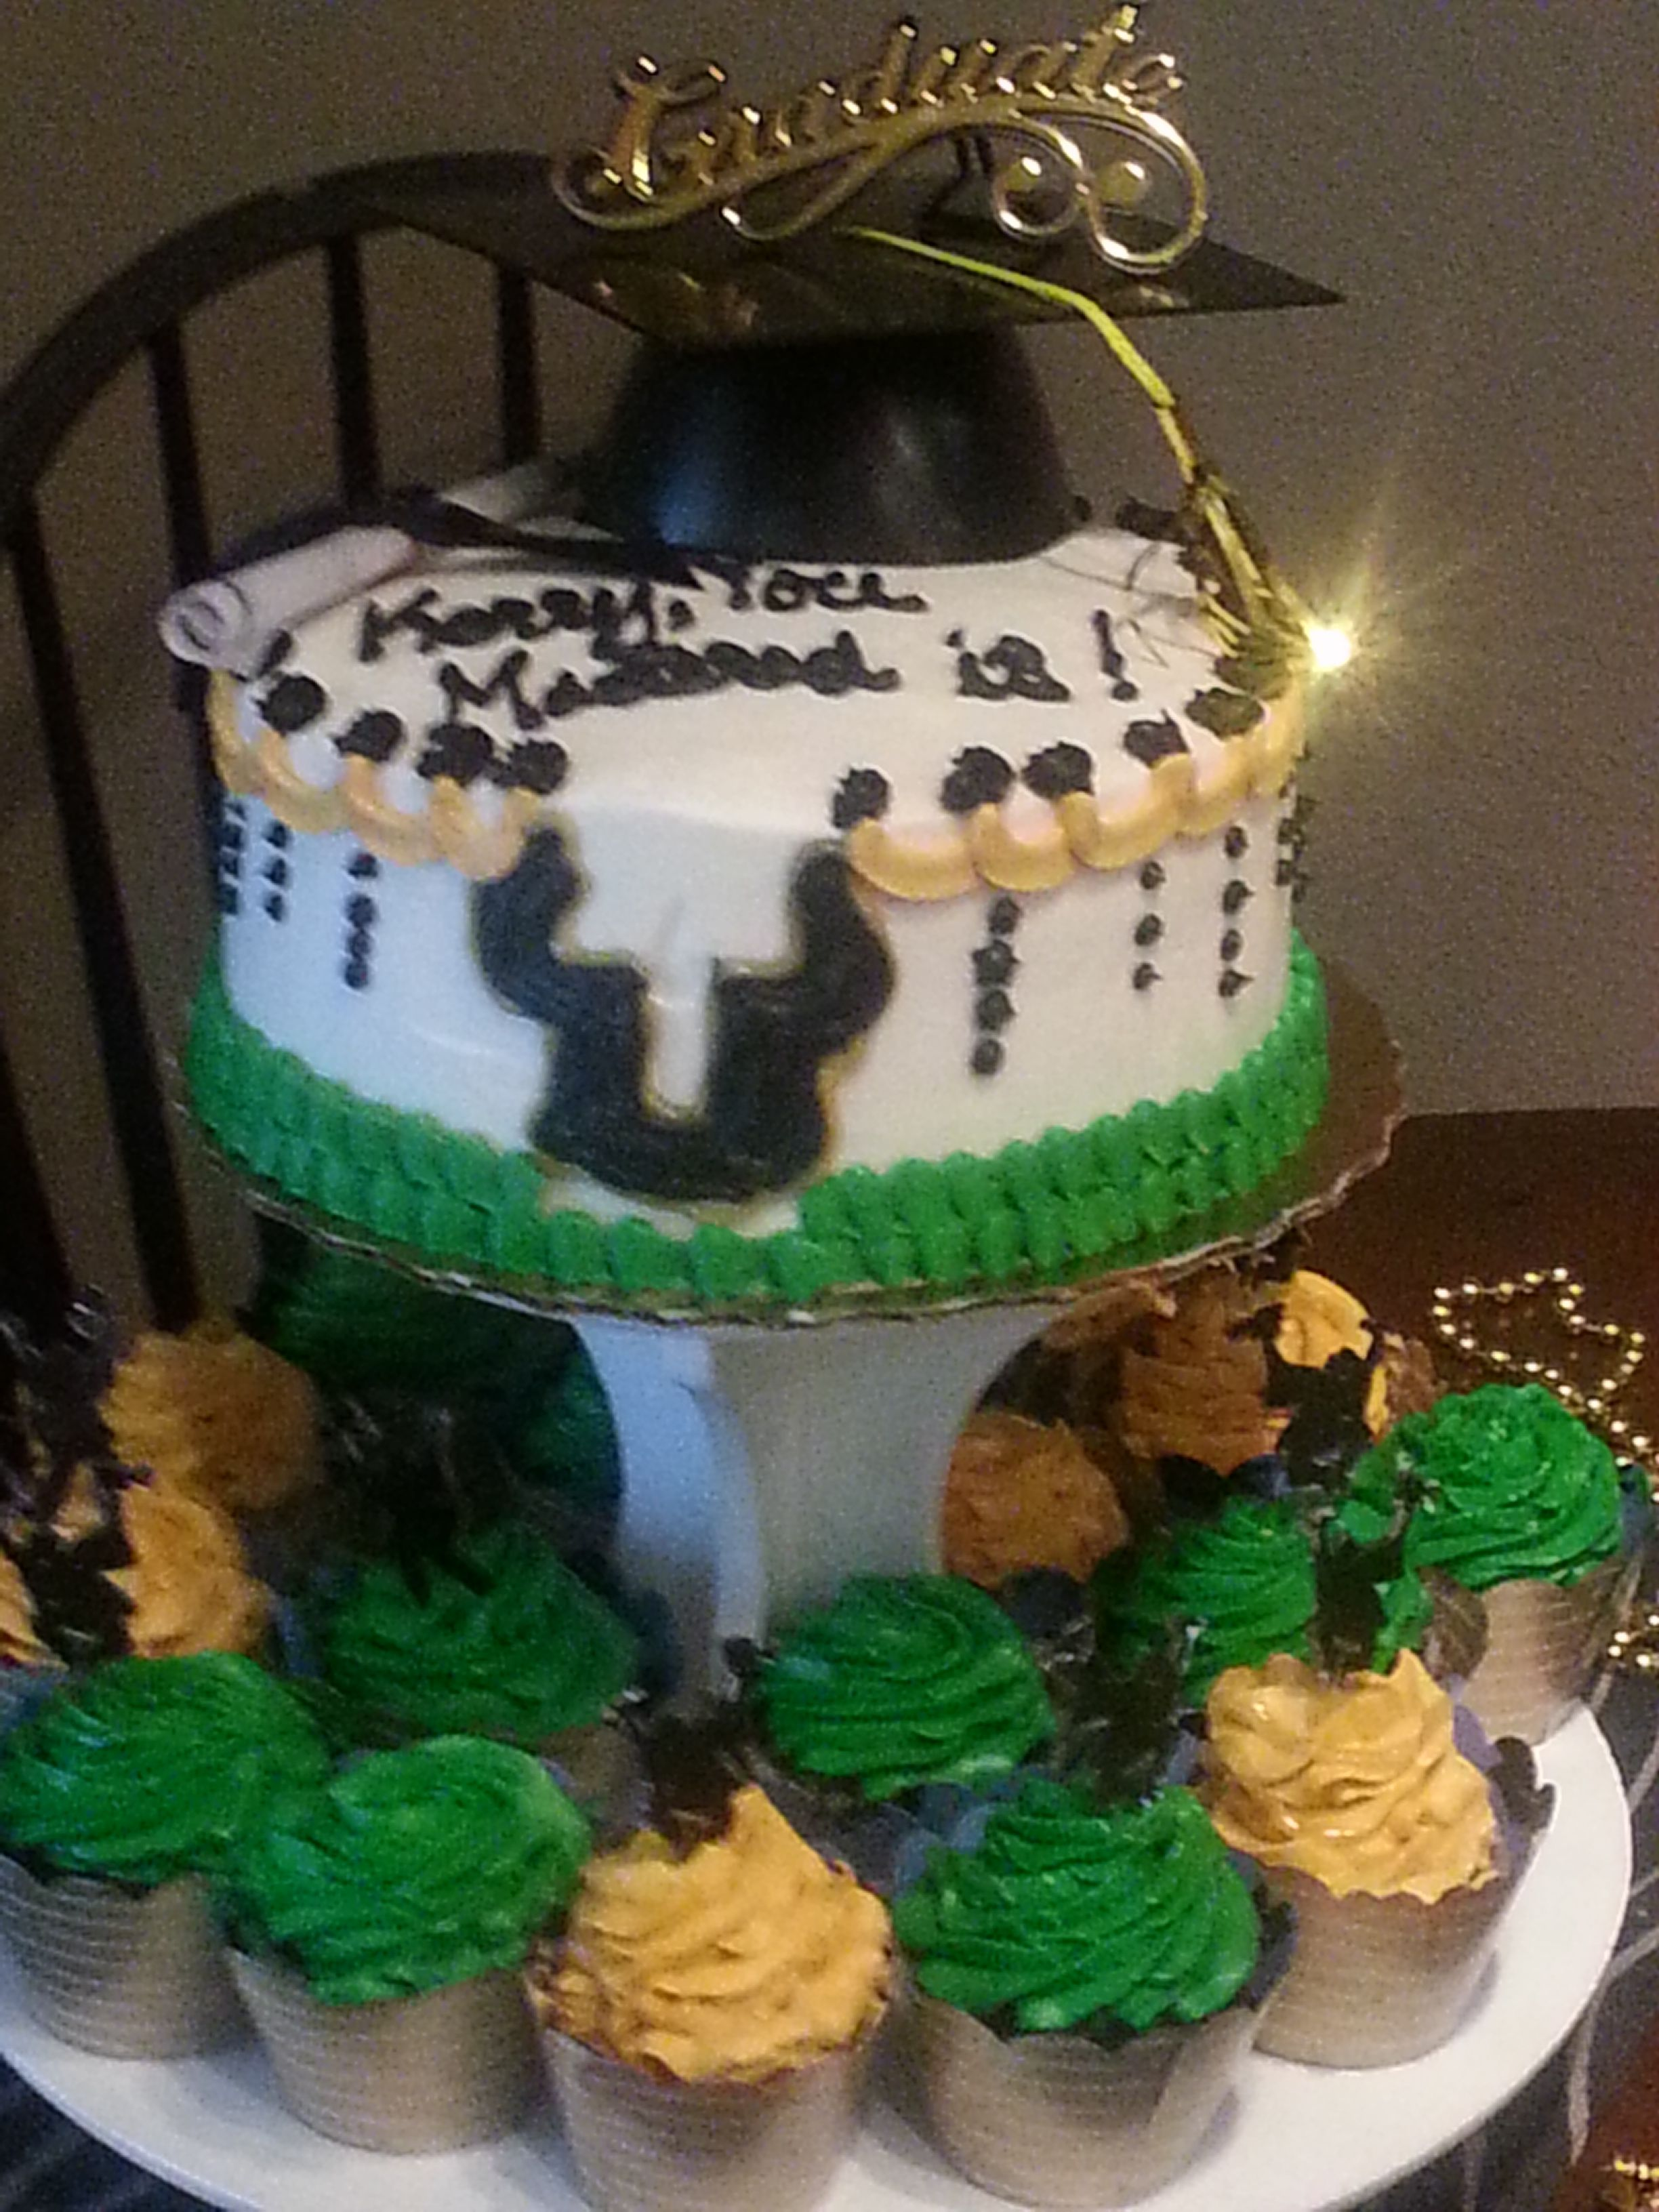 Kerry Graduation Cake Made By Publix And Designed By Me Good Times